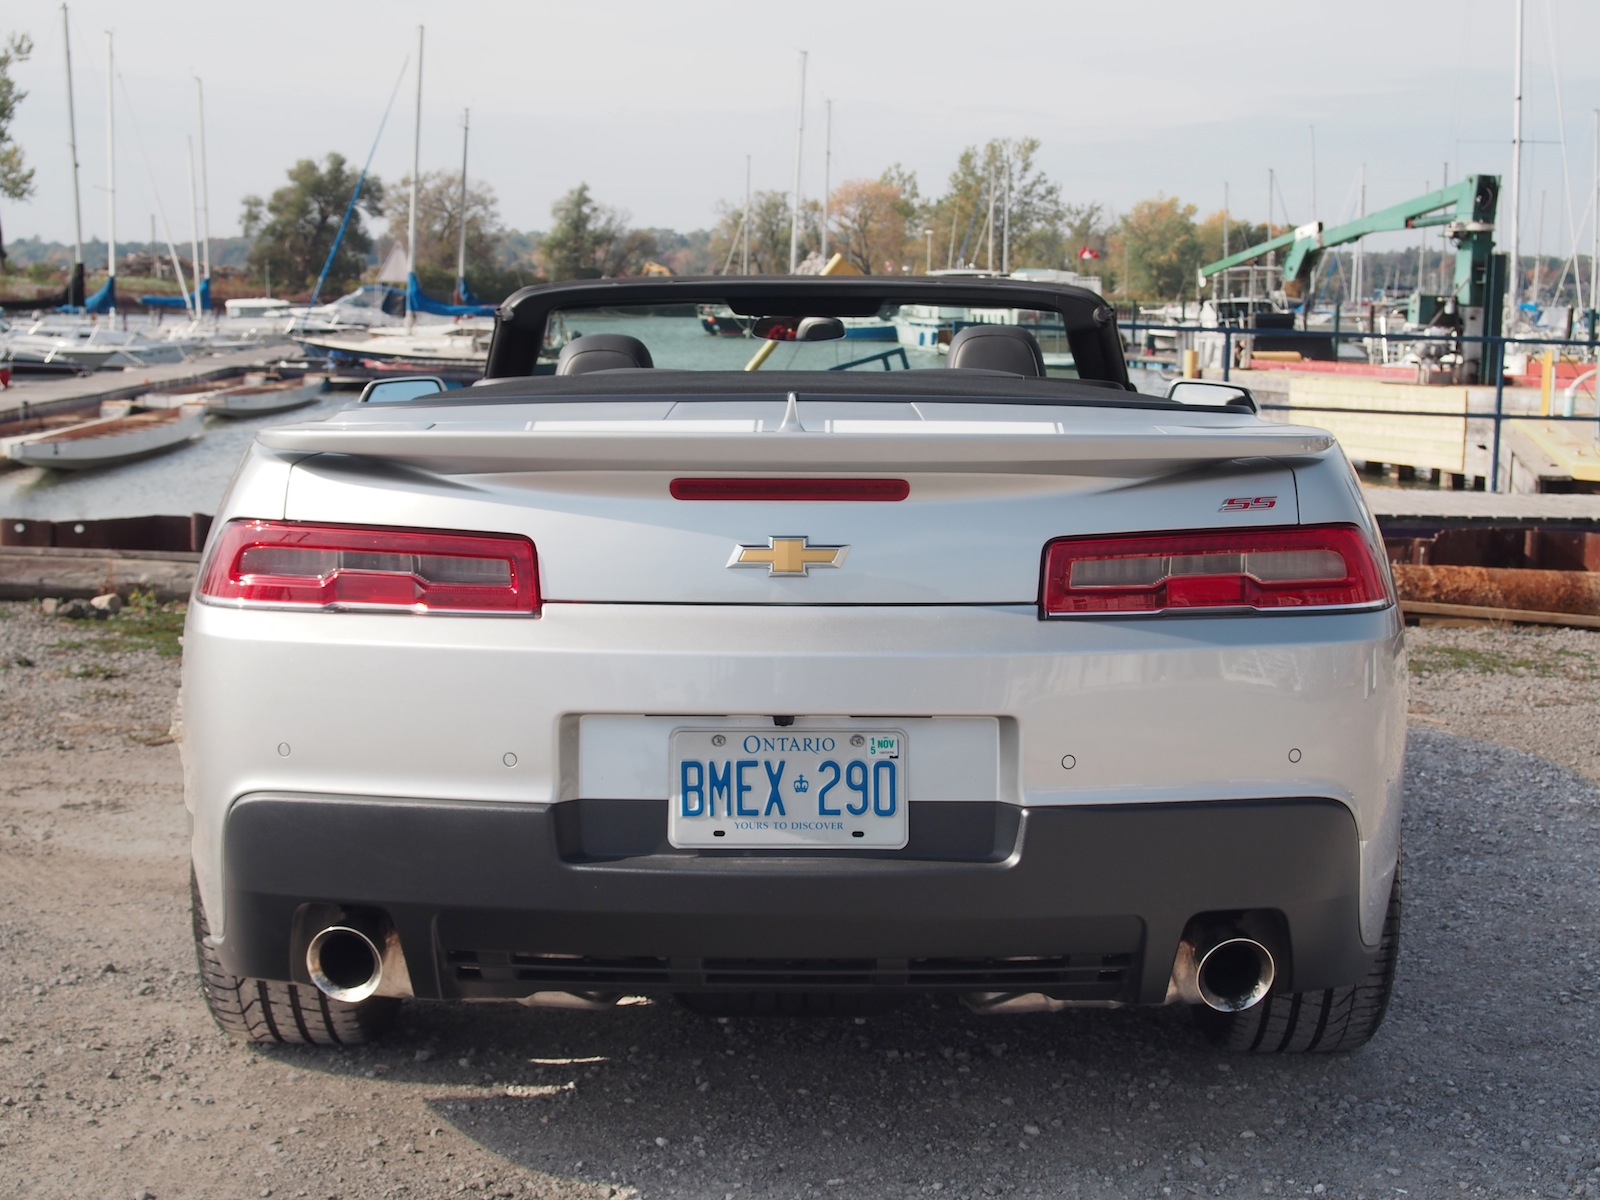 2015 chevrolet camaro ss convertible silver rear racing stripes exhaust